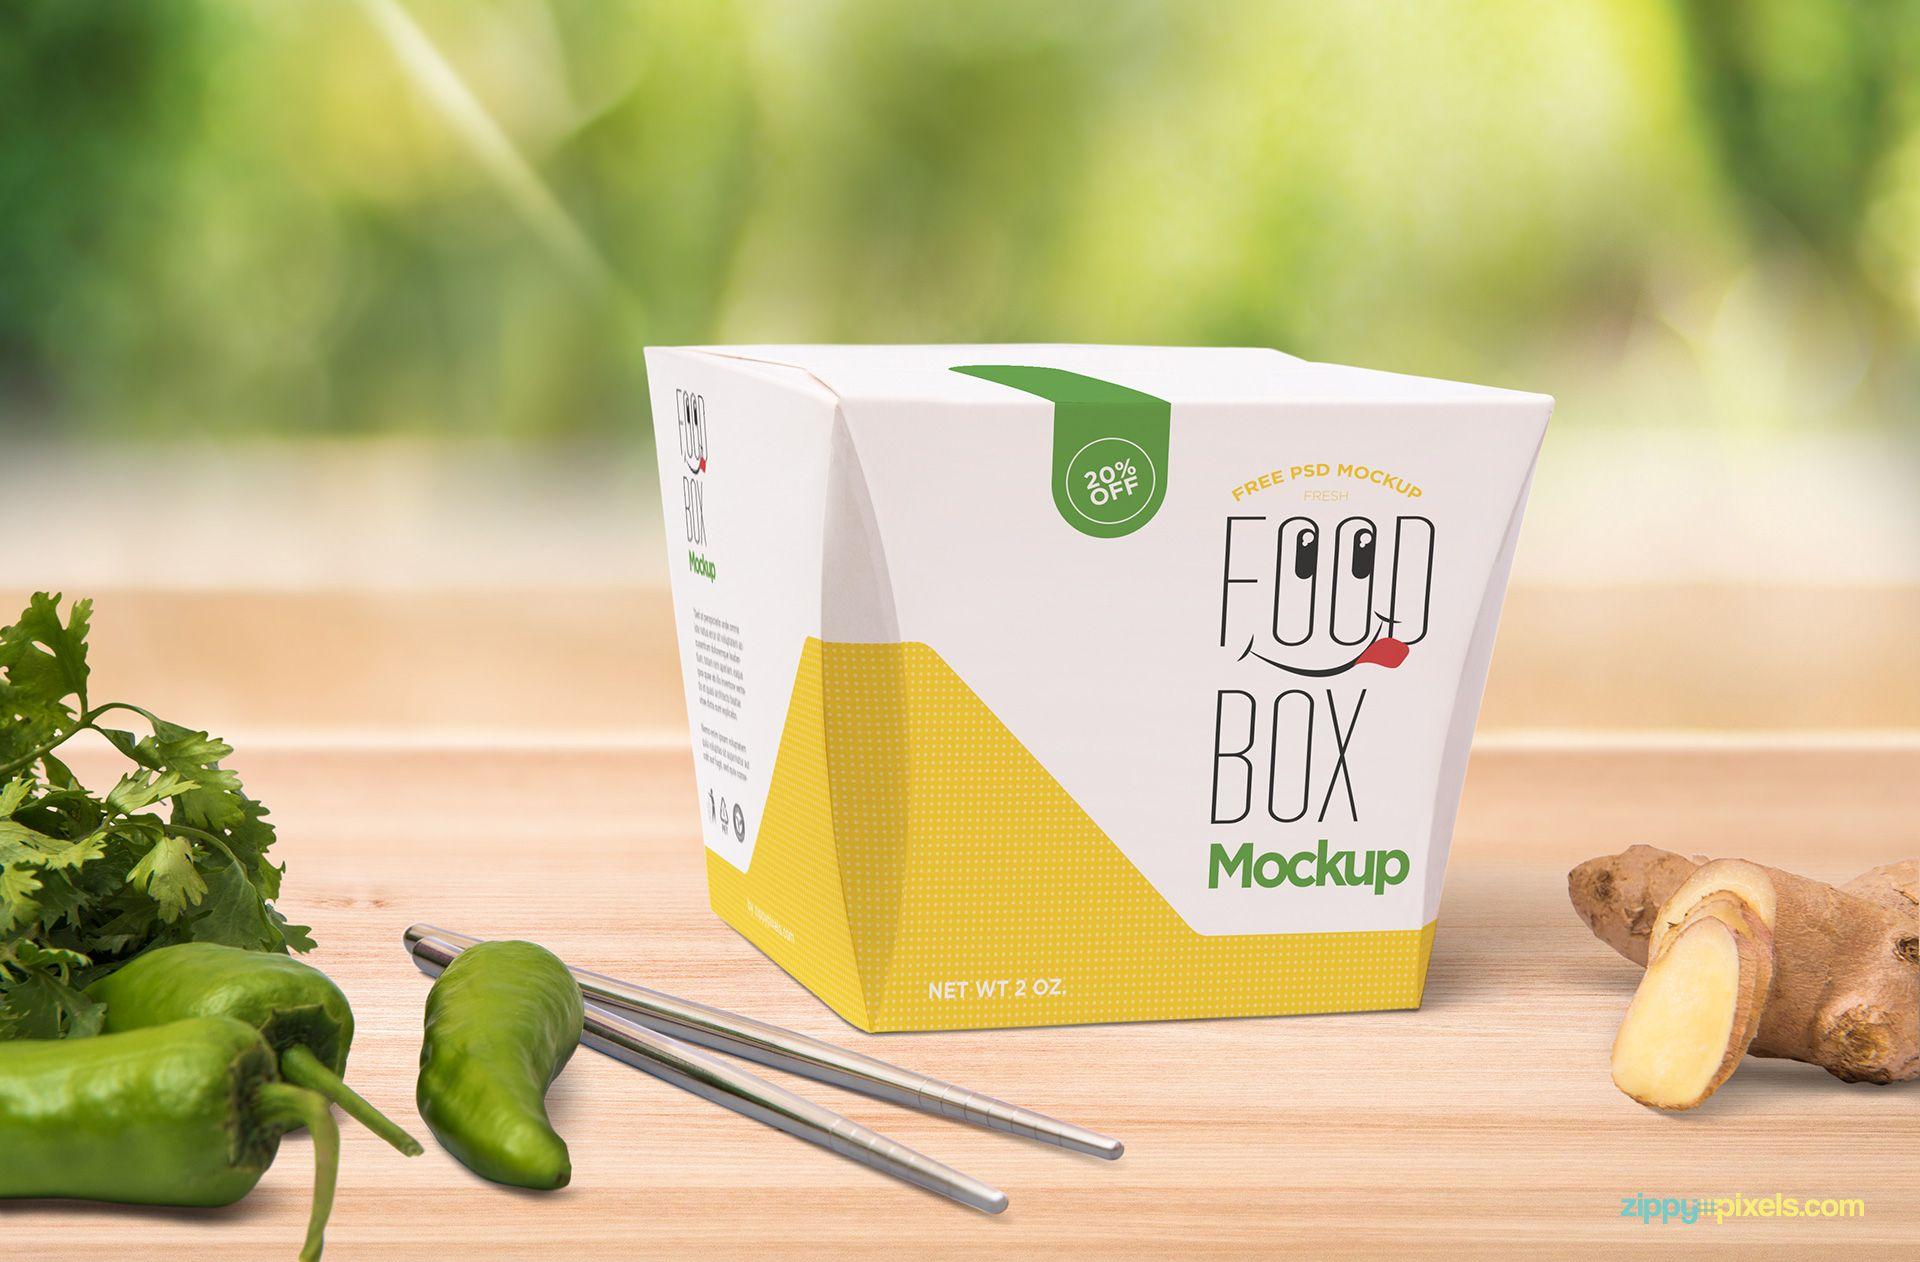 Free Realistic Lunch Box Mockup | Packaging Mockups | Pinterest ...